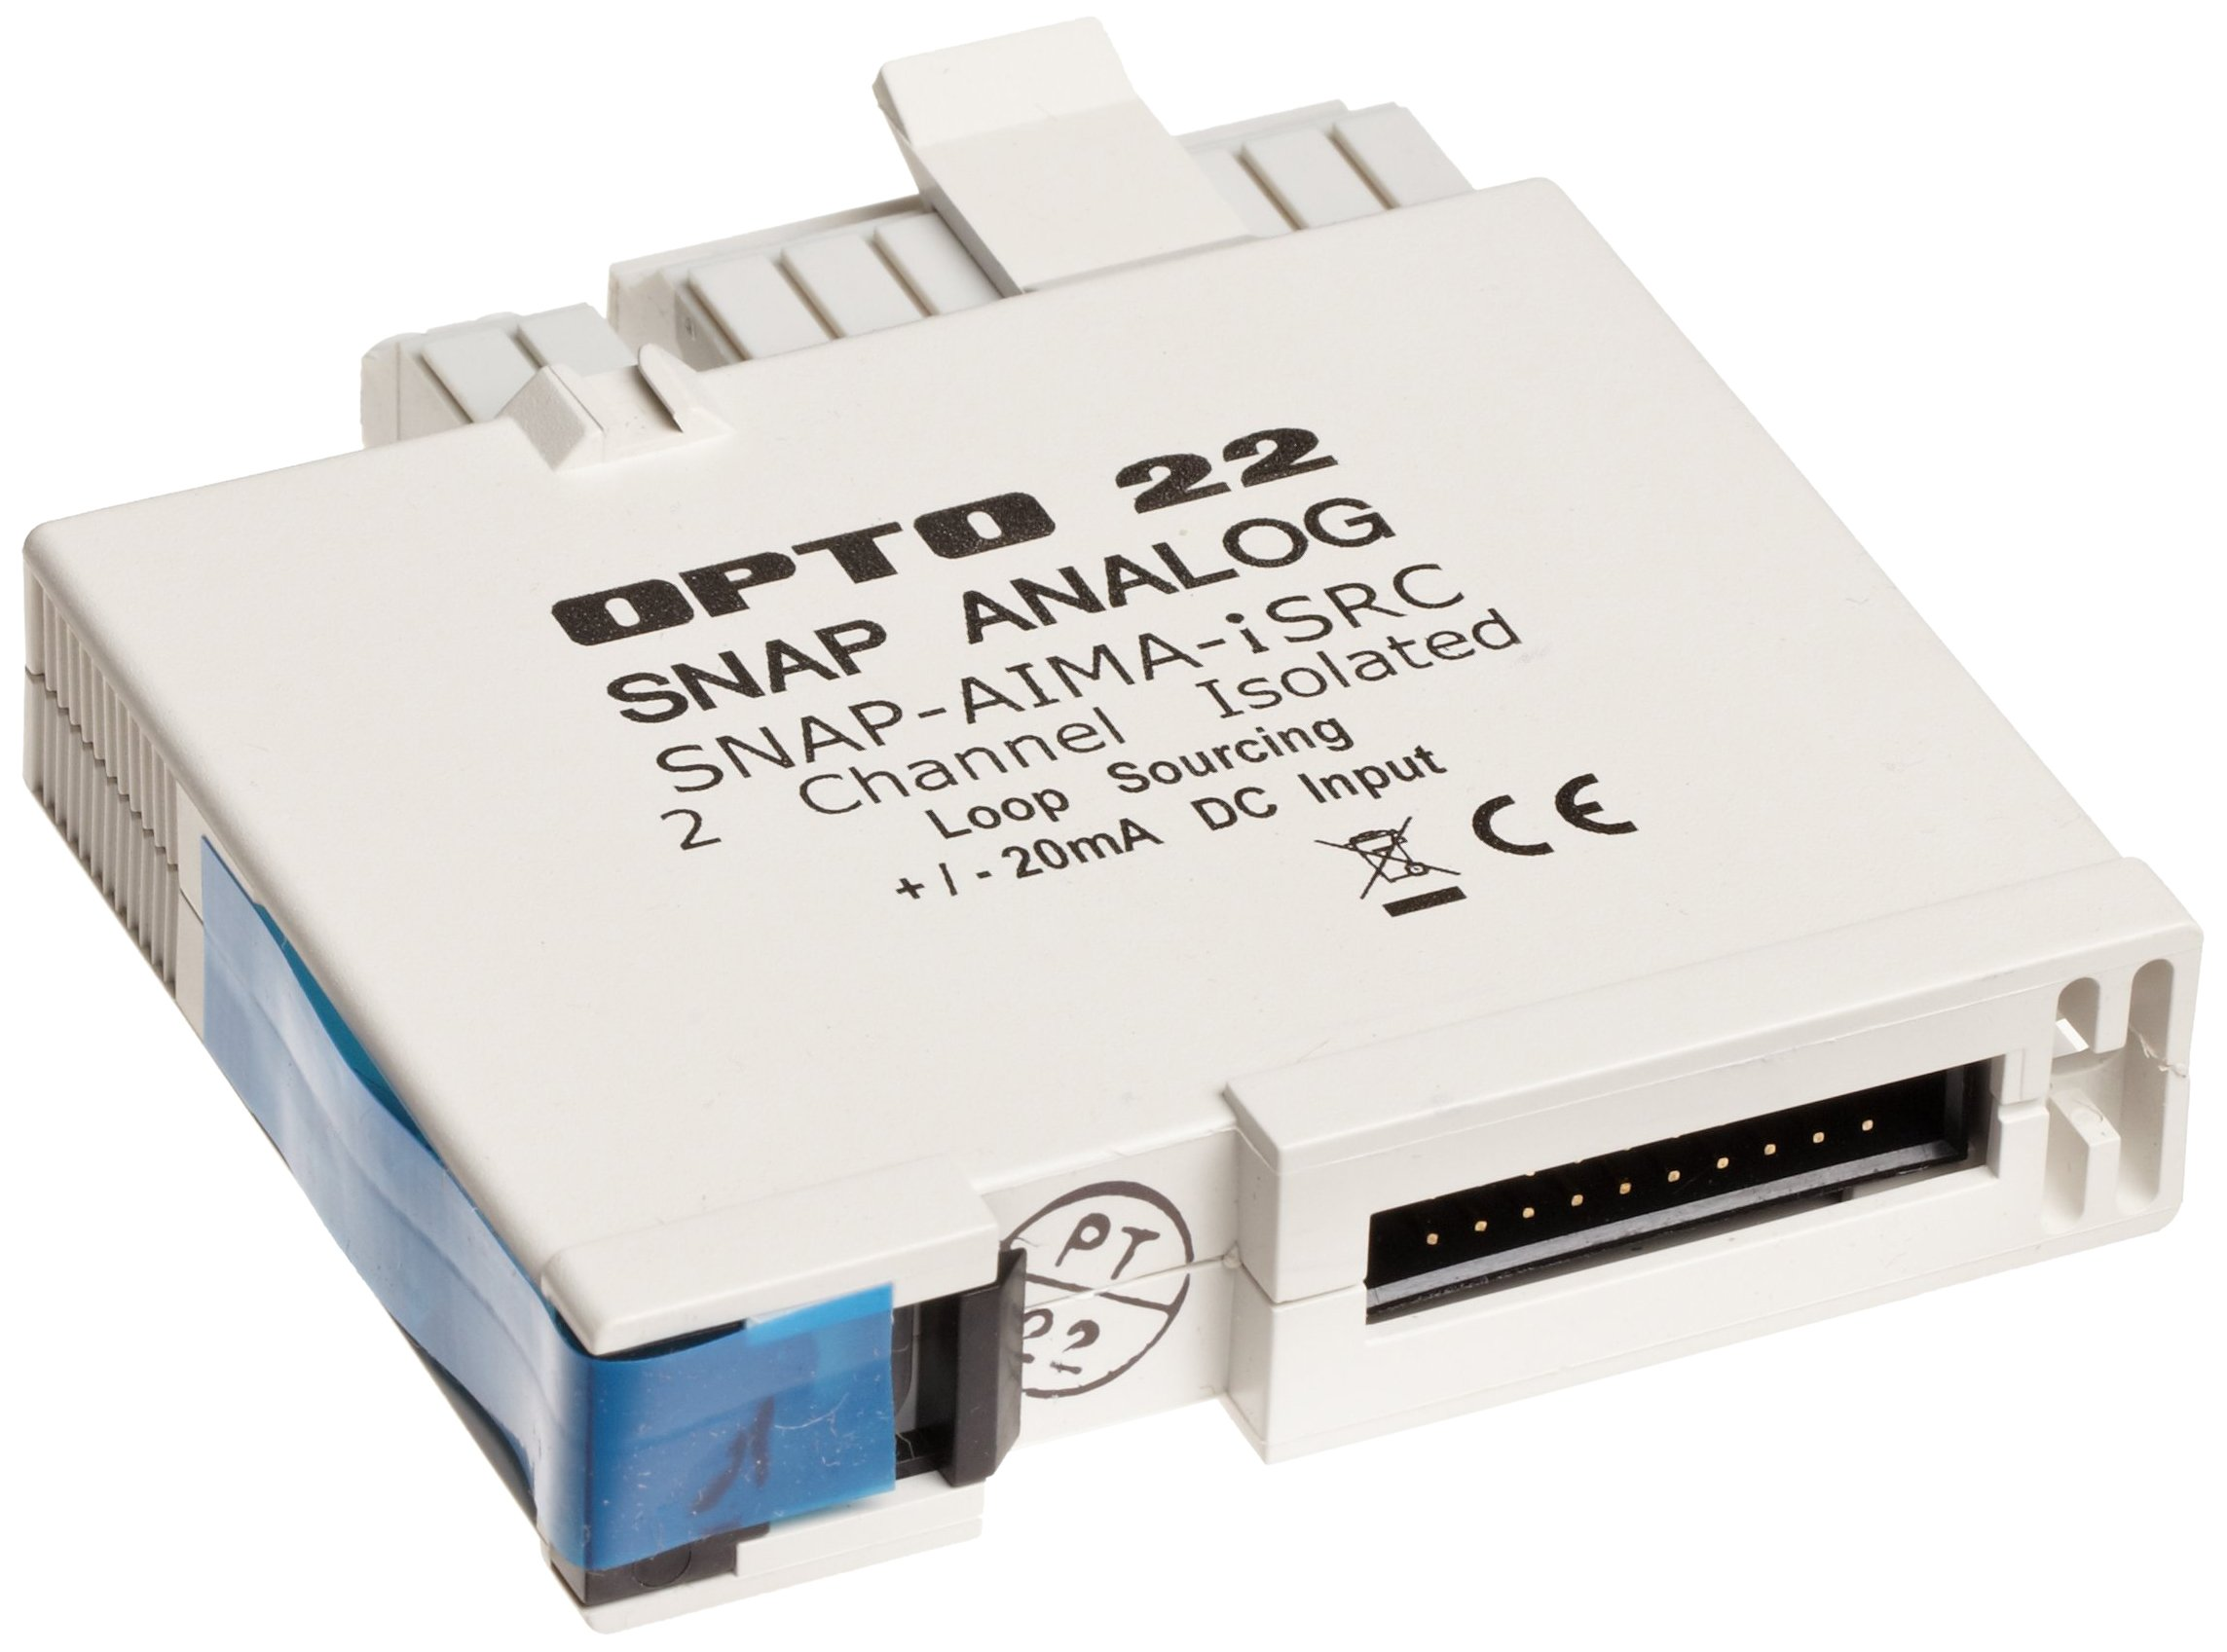 Opto 22 SNAP-AIMA-iSRC - SNAP Isolated Analog Current Input Module with Loop Sourcing, 24-30 VDC, Input Range -20 to +20 mA